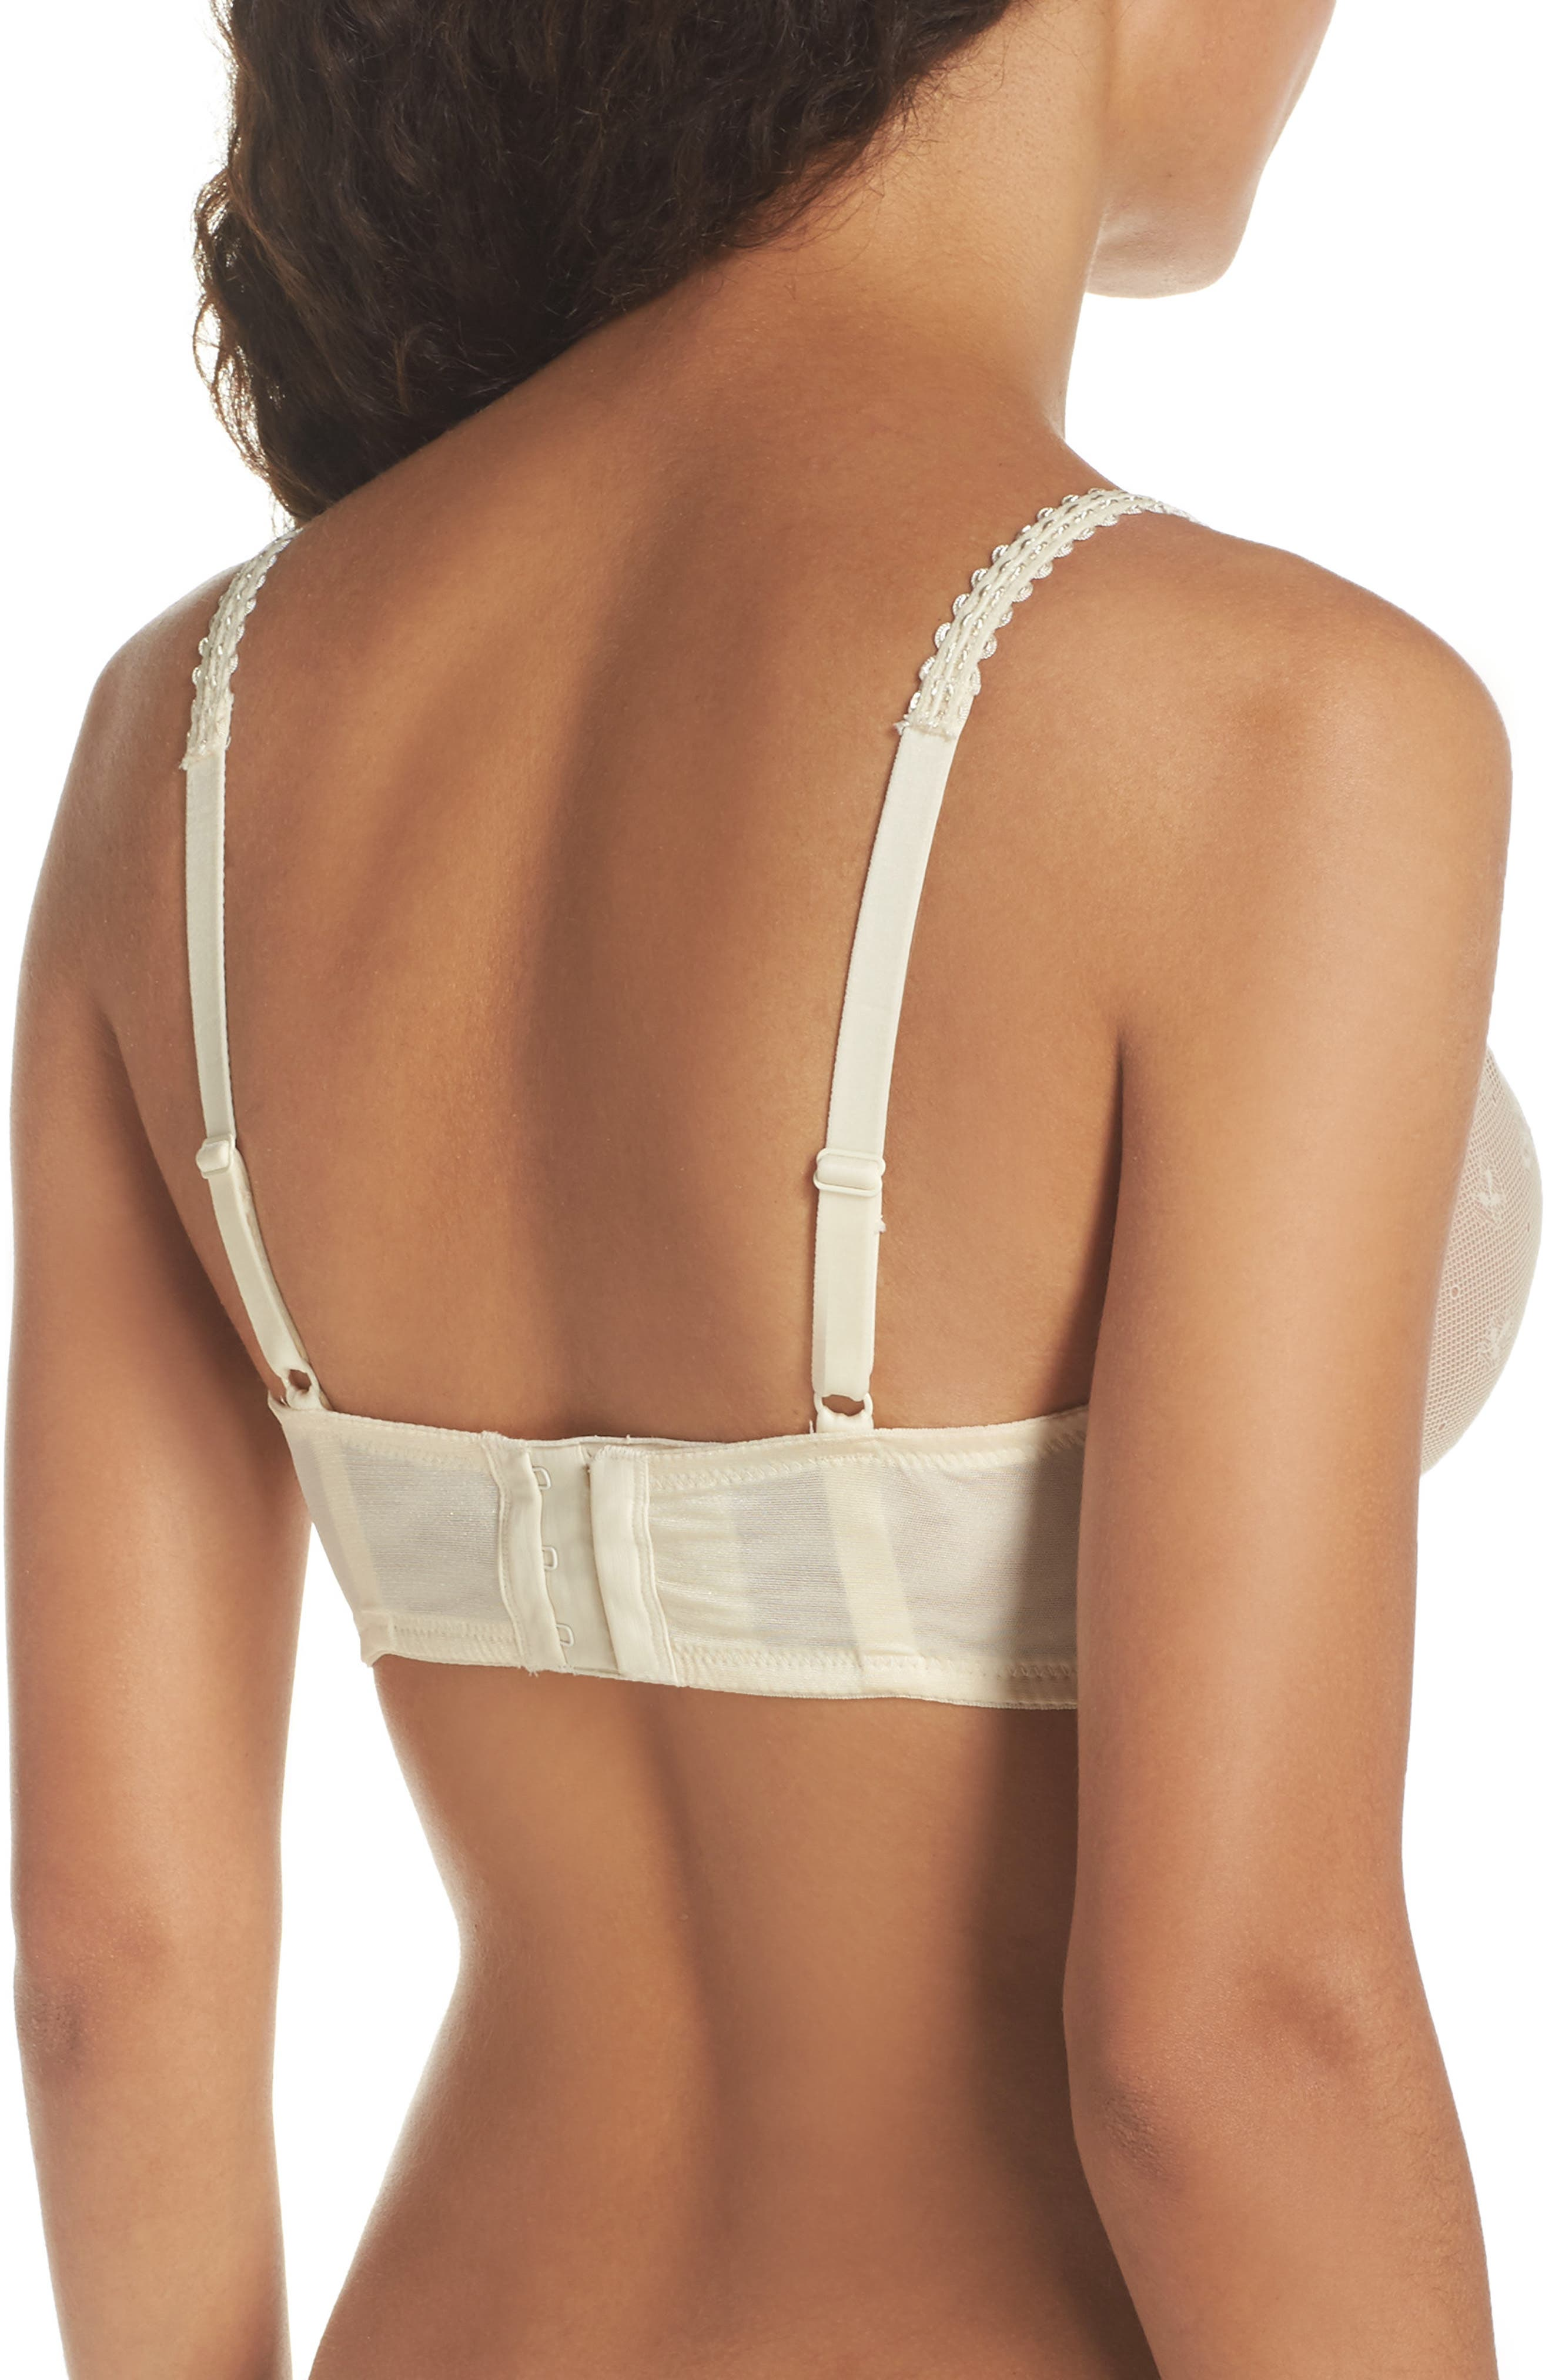 Sexy Mama Underwire Nursing Bra,                             Alternate thumbnail 3, color,                             IVORY/NATURAL